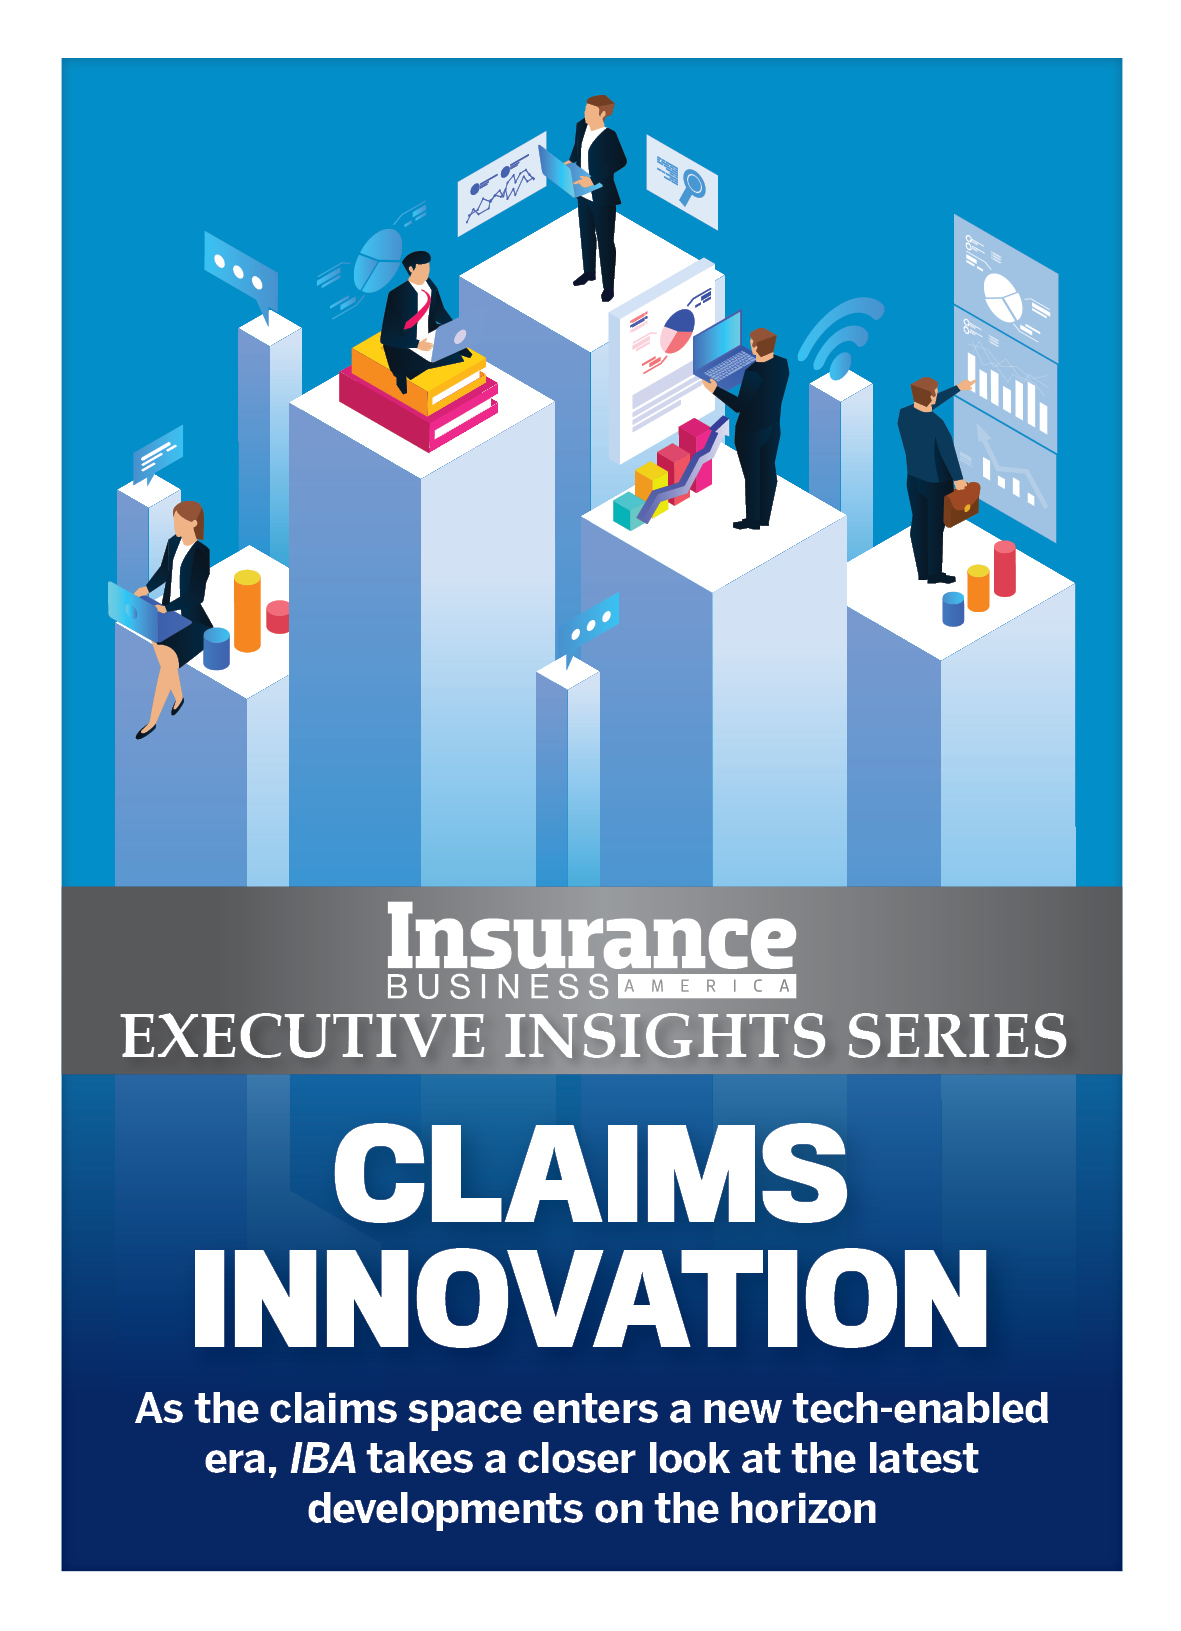 Insurance Business America 9.07 - Executive Insights Series: Claims Innovation 2021